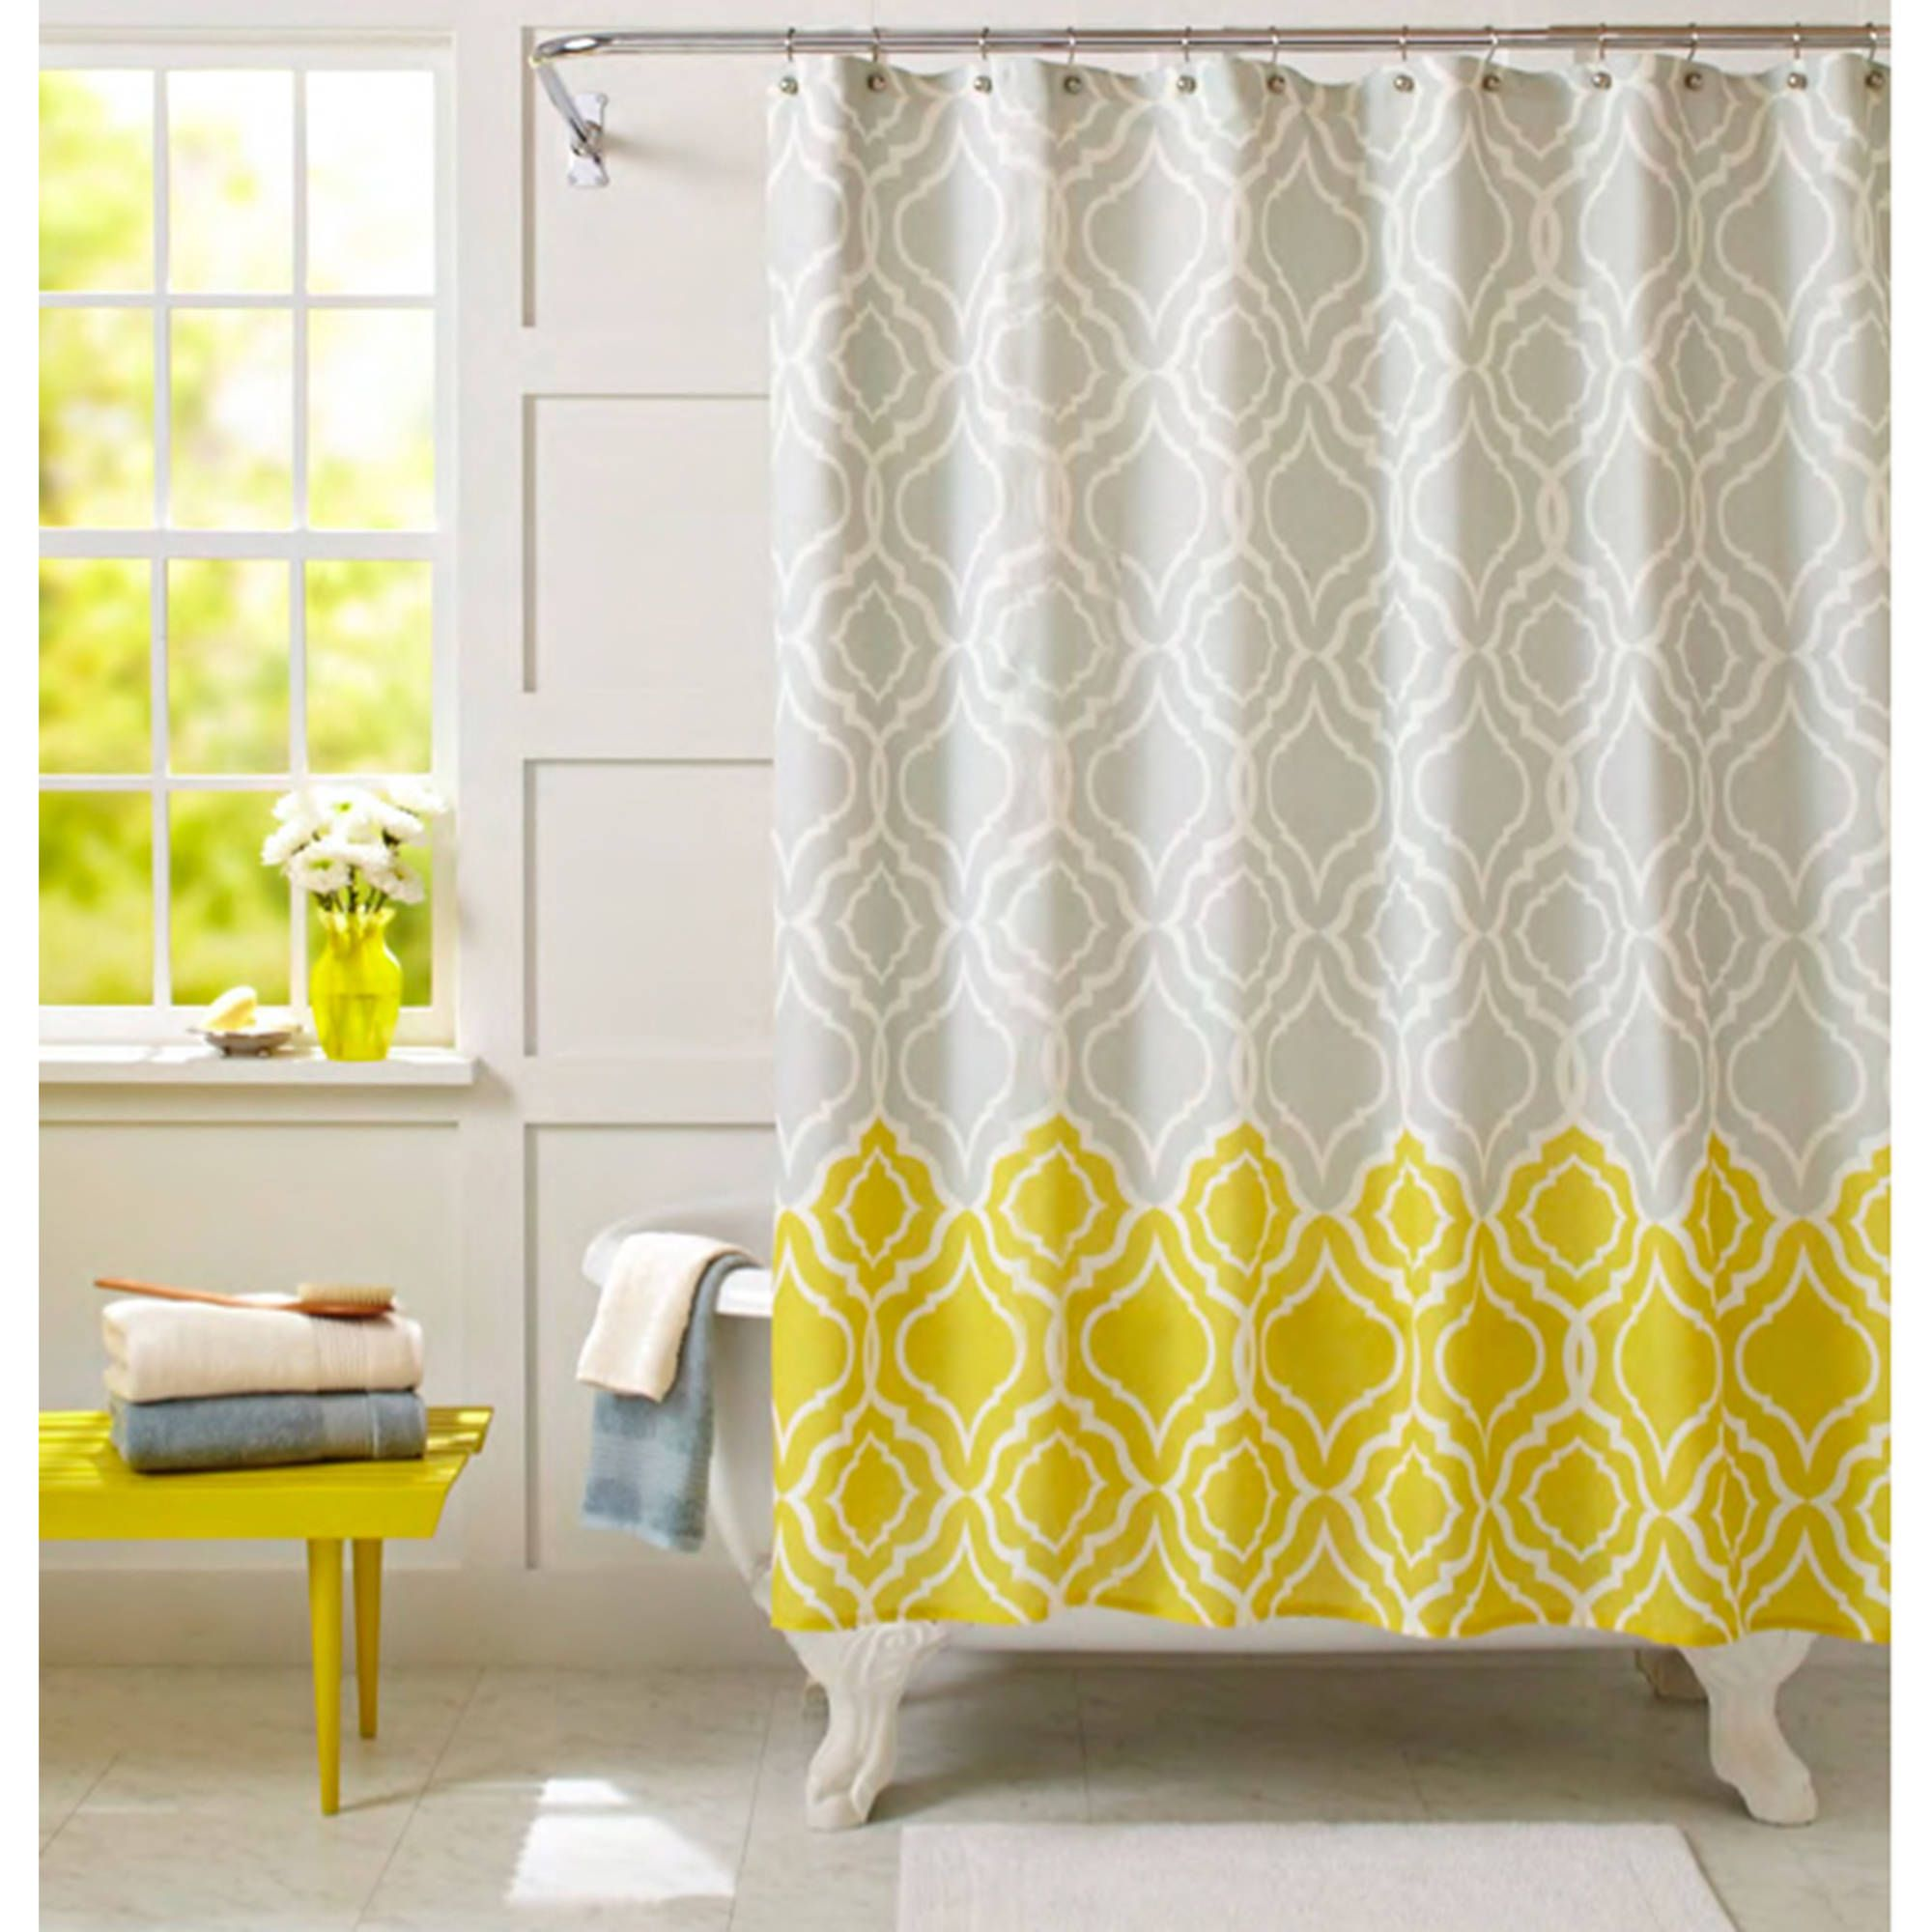 e0d96fa04dee836d31c3953c4e409ae4 - Better Homes And Gardens Ivy Kitchen Curtain Set